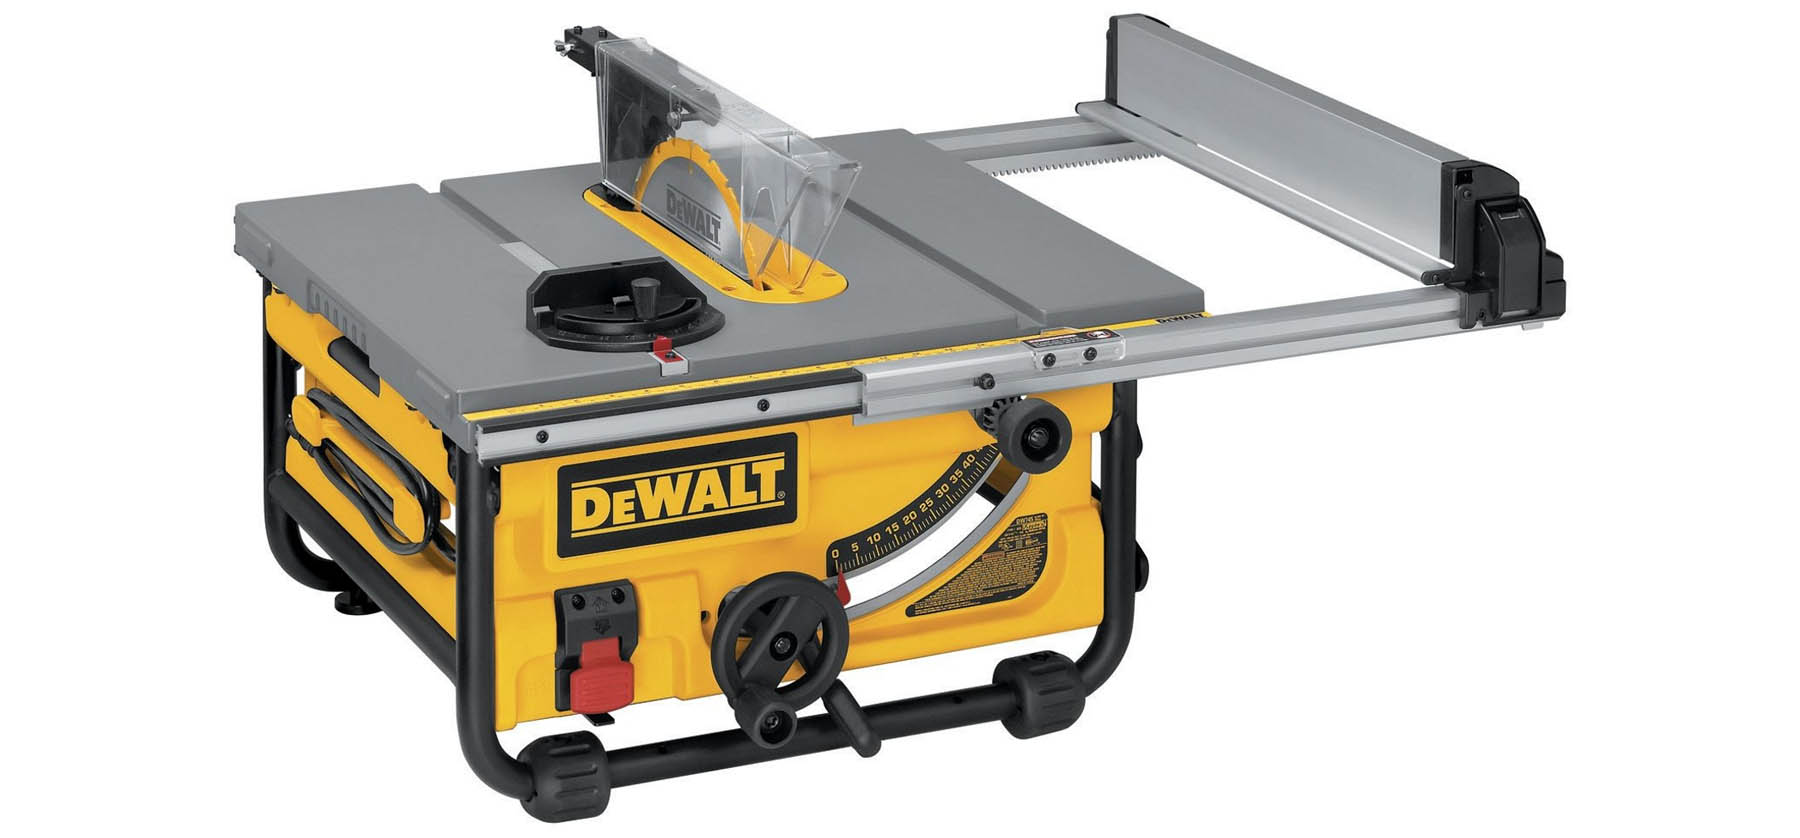 table saw by Dewalt basic tool for beginner level woodworking